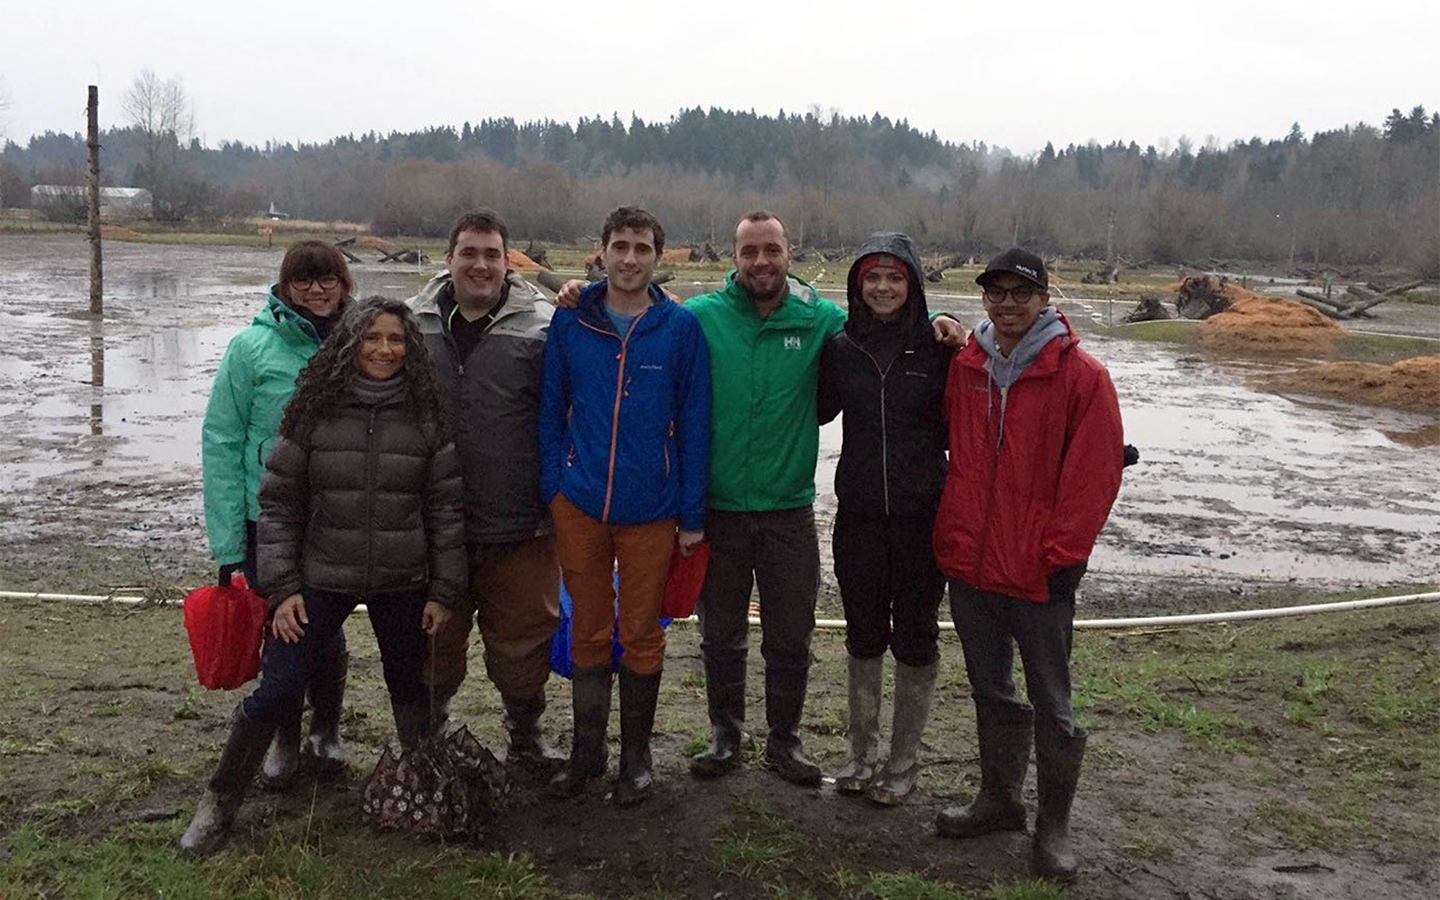 Senior landscape architecture students visit the Upper Clear Creek mitigation site with WSU landscape architecture alumnus Derrick Eberle (third from right).